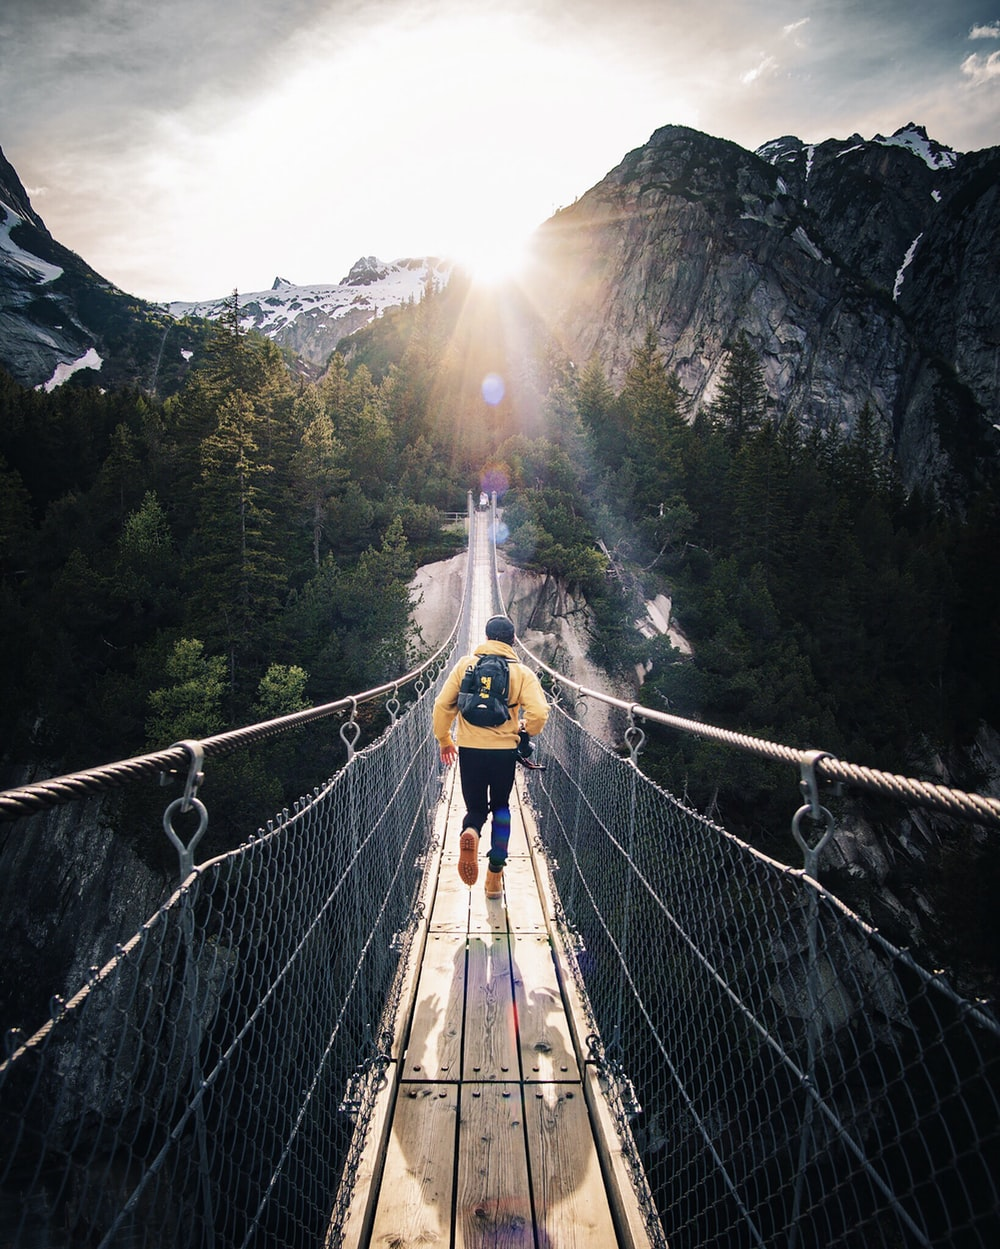 500 Outdoors Pictures Hd Download Free Images On Unsplash